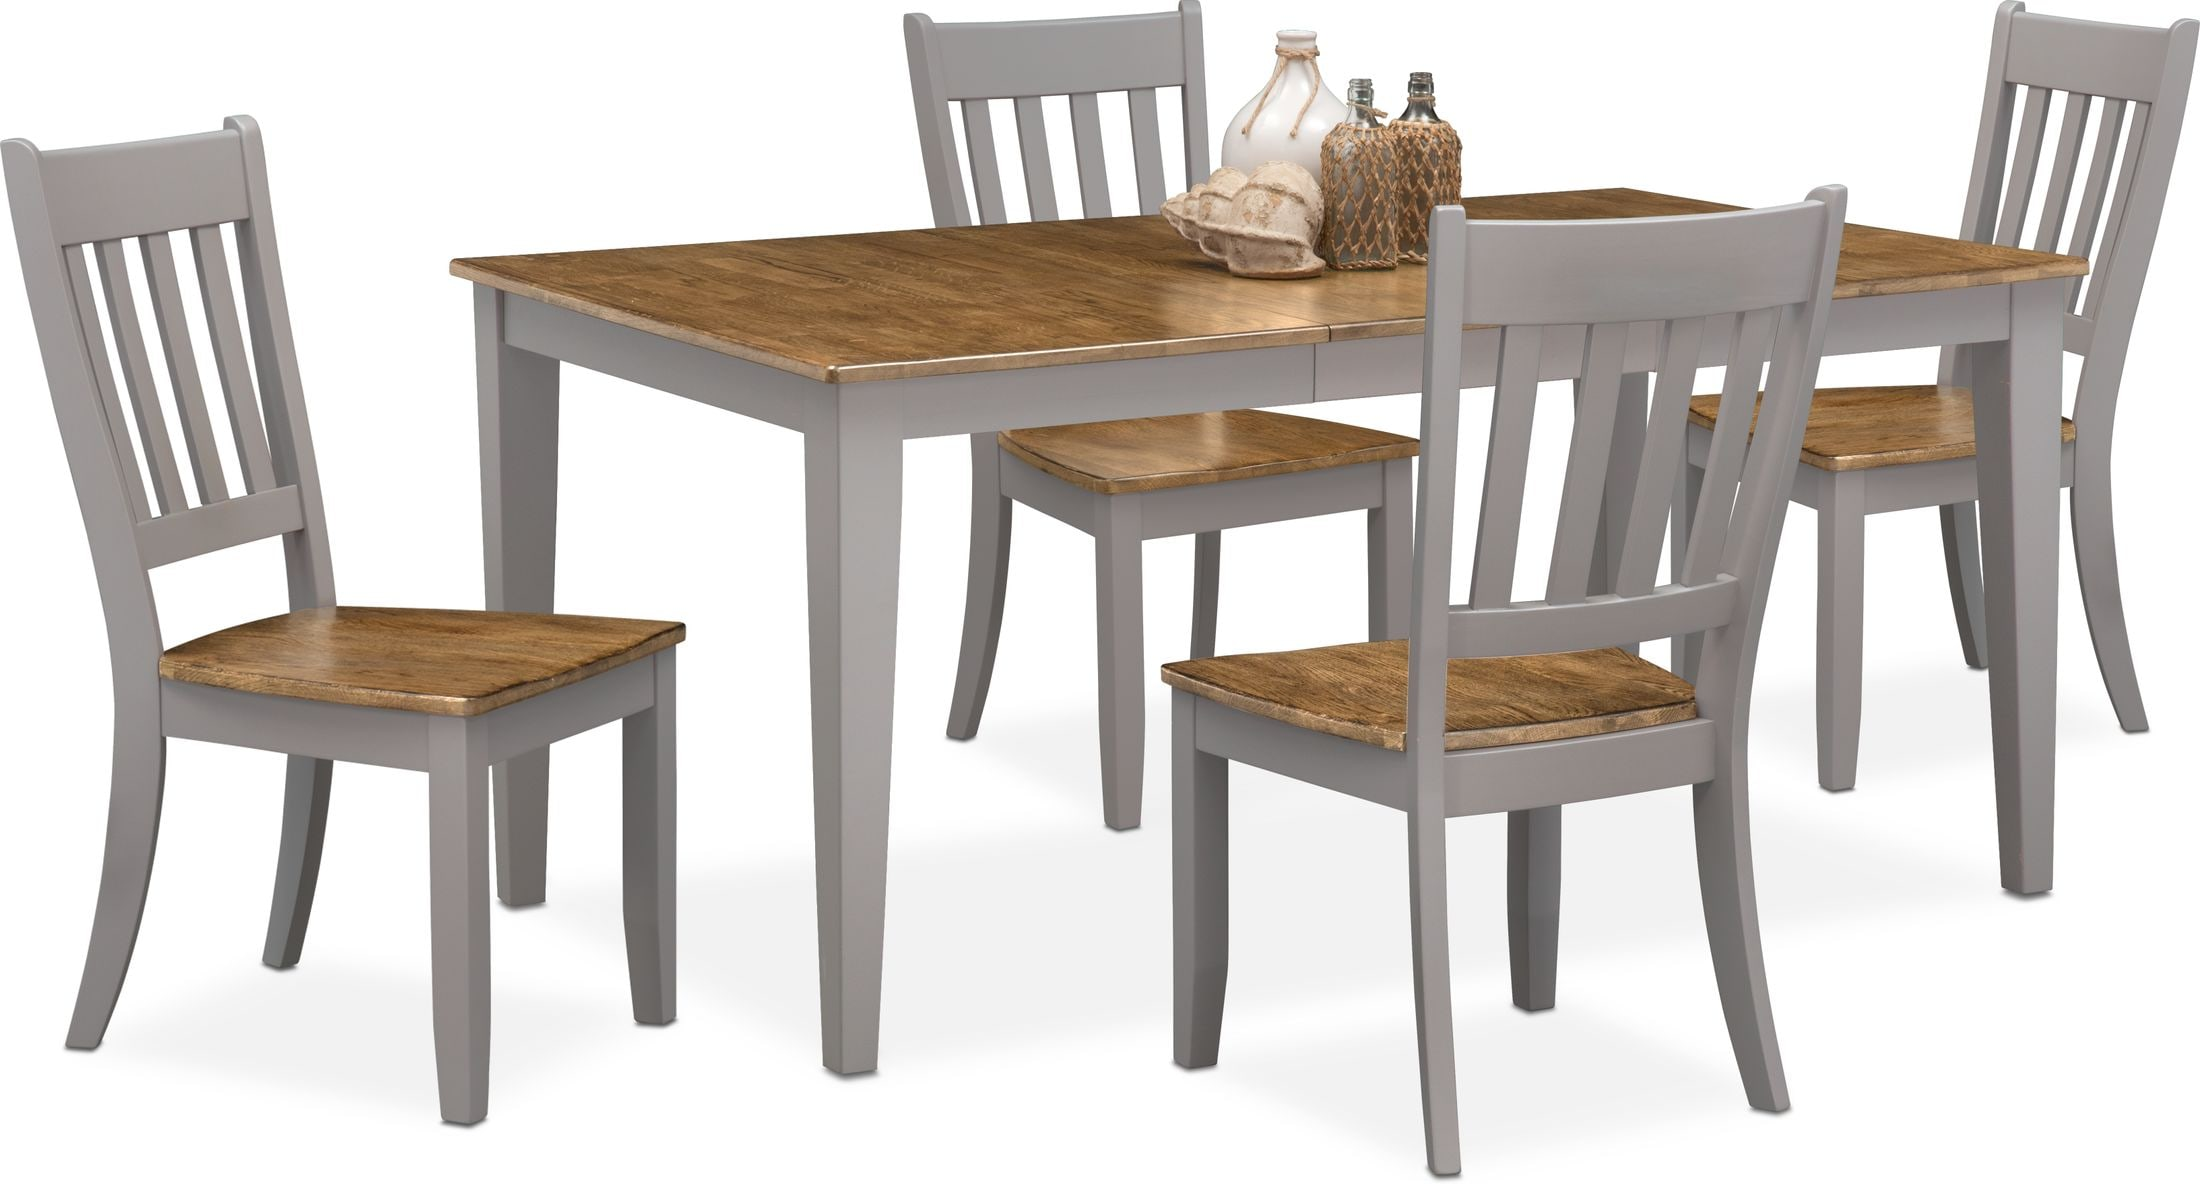 Nantucket Dining Table and 4 Slat-Back Dining Chairs | Value City Furniture